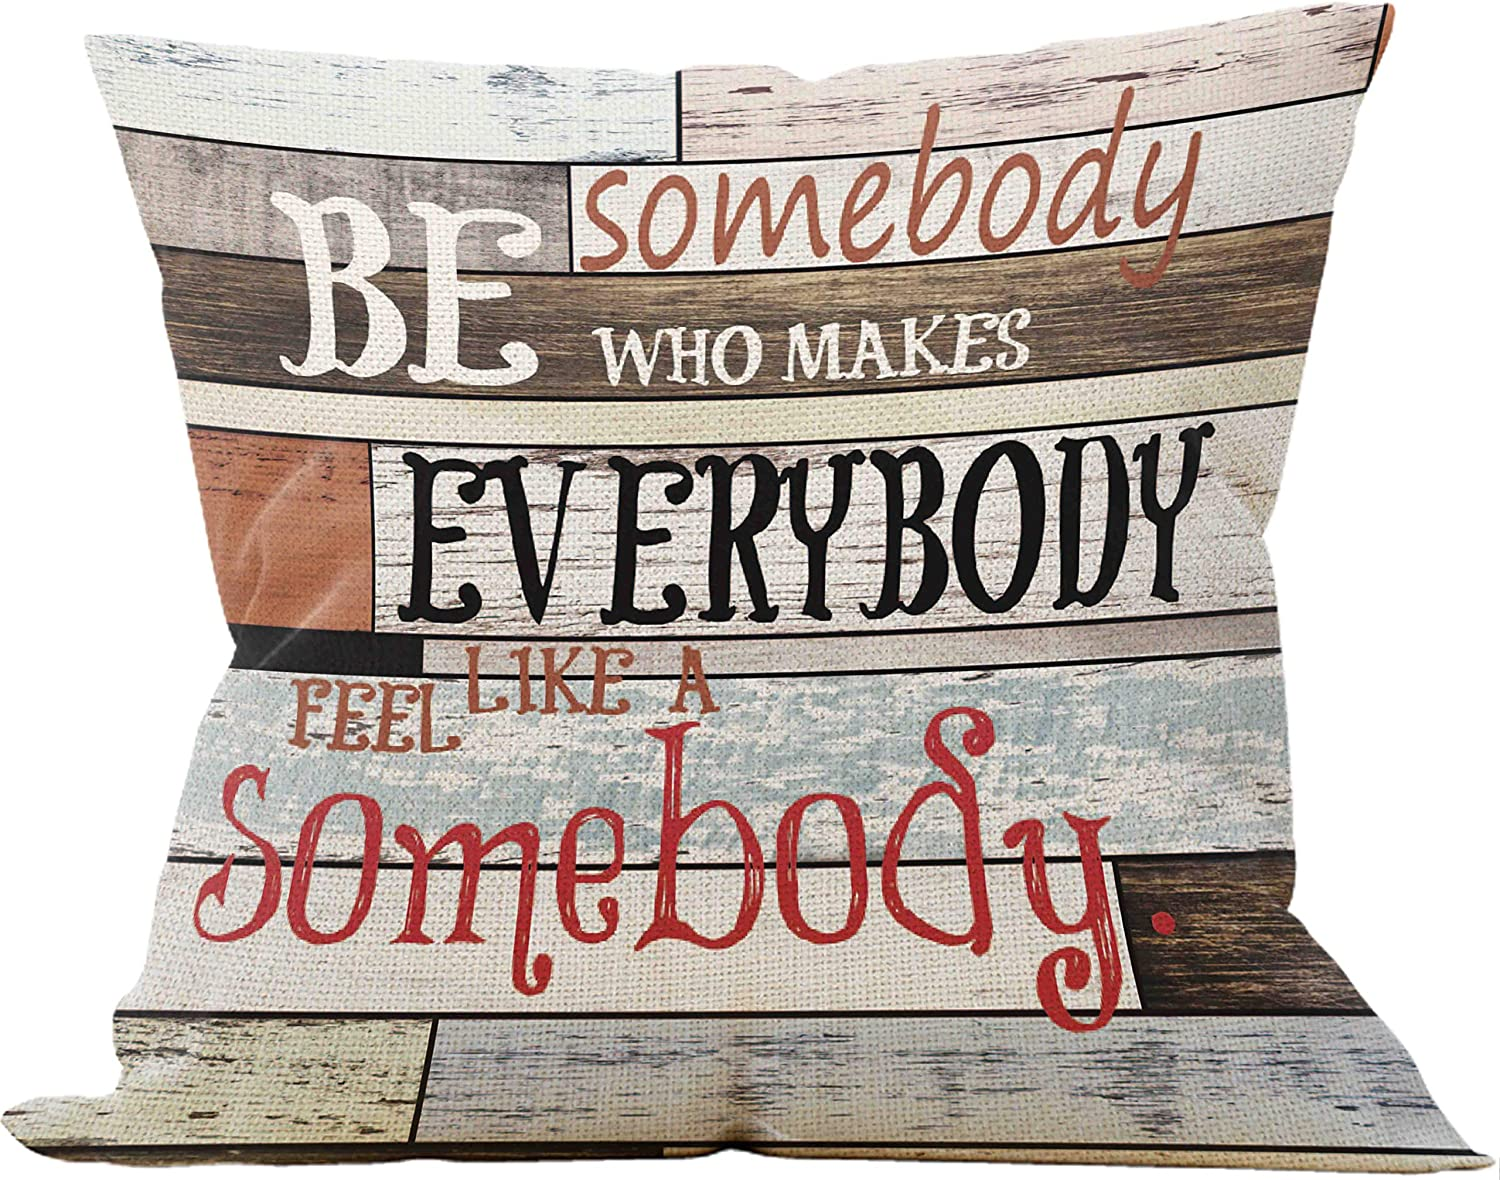 Be Somebody Who Makes Everybody Feel Like a Somebody Throw Pillow Case, Office Inspirational Quotes Pillow, 18 x 18 Inch Vintage Wood Decorative Cotton Linen Cushion Cover for Sofa Couch Office